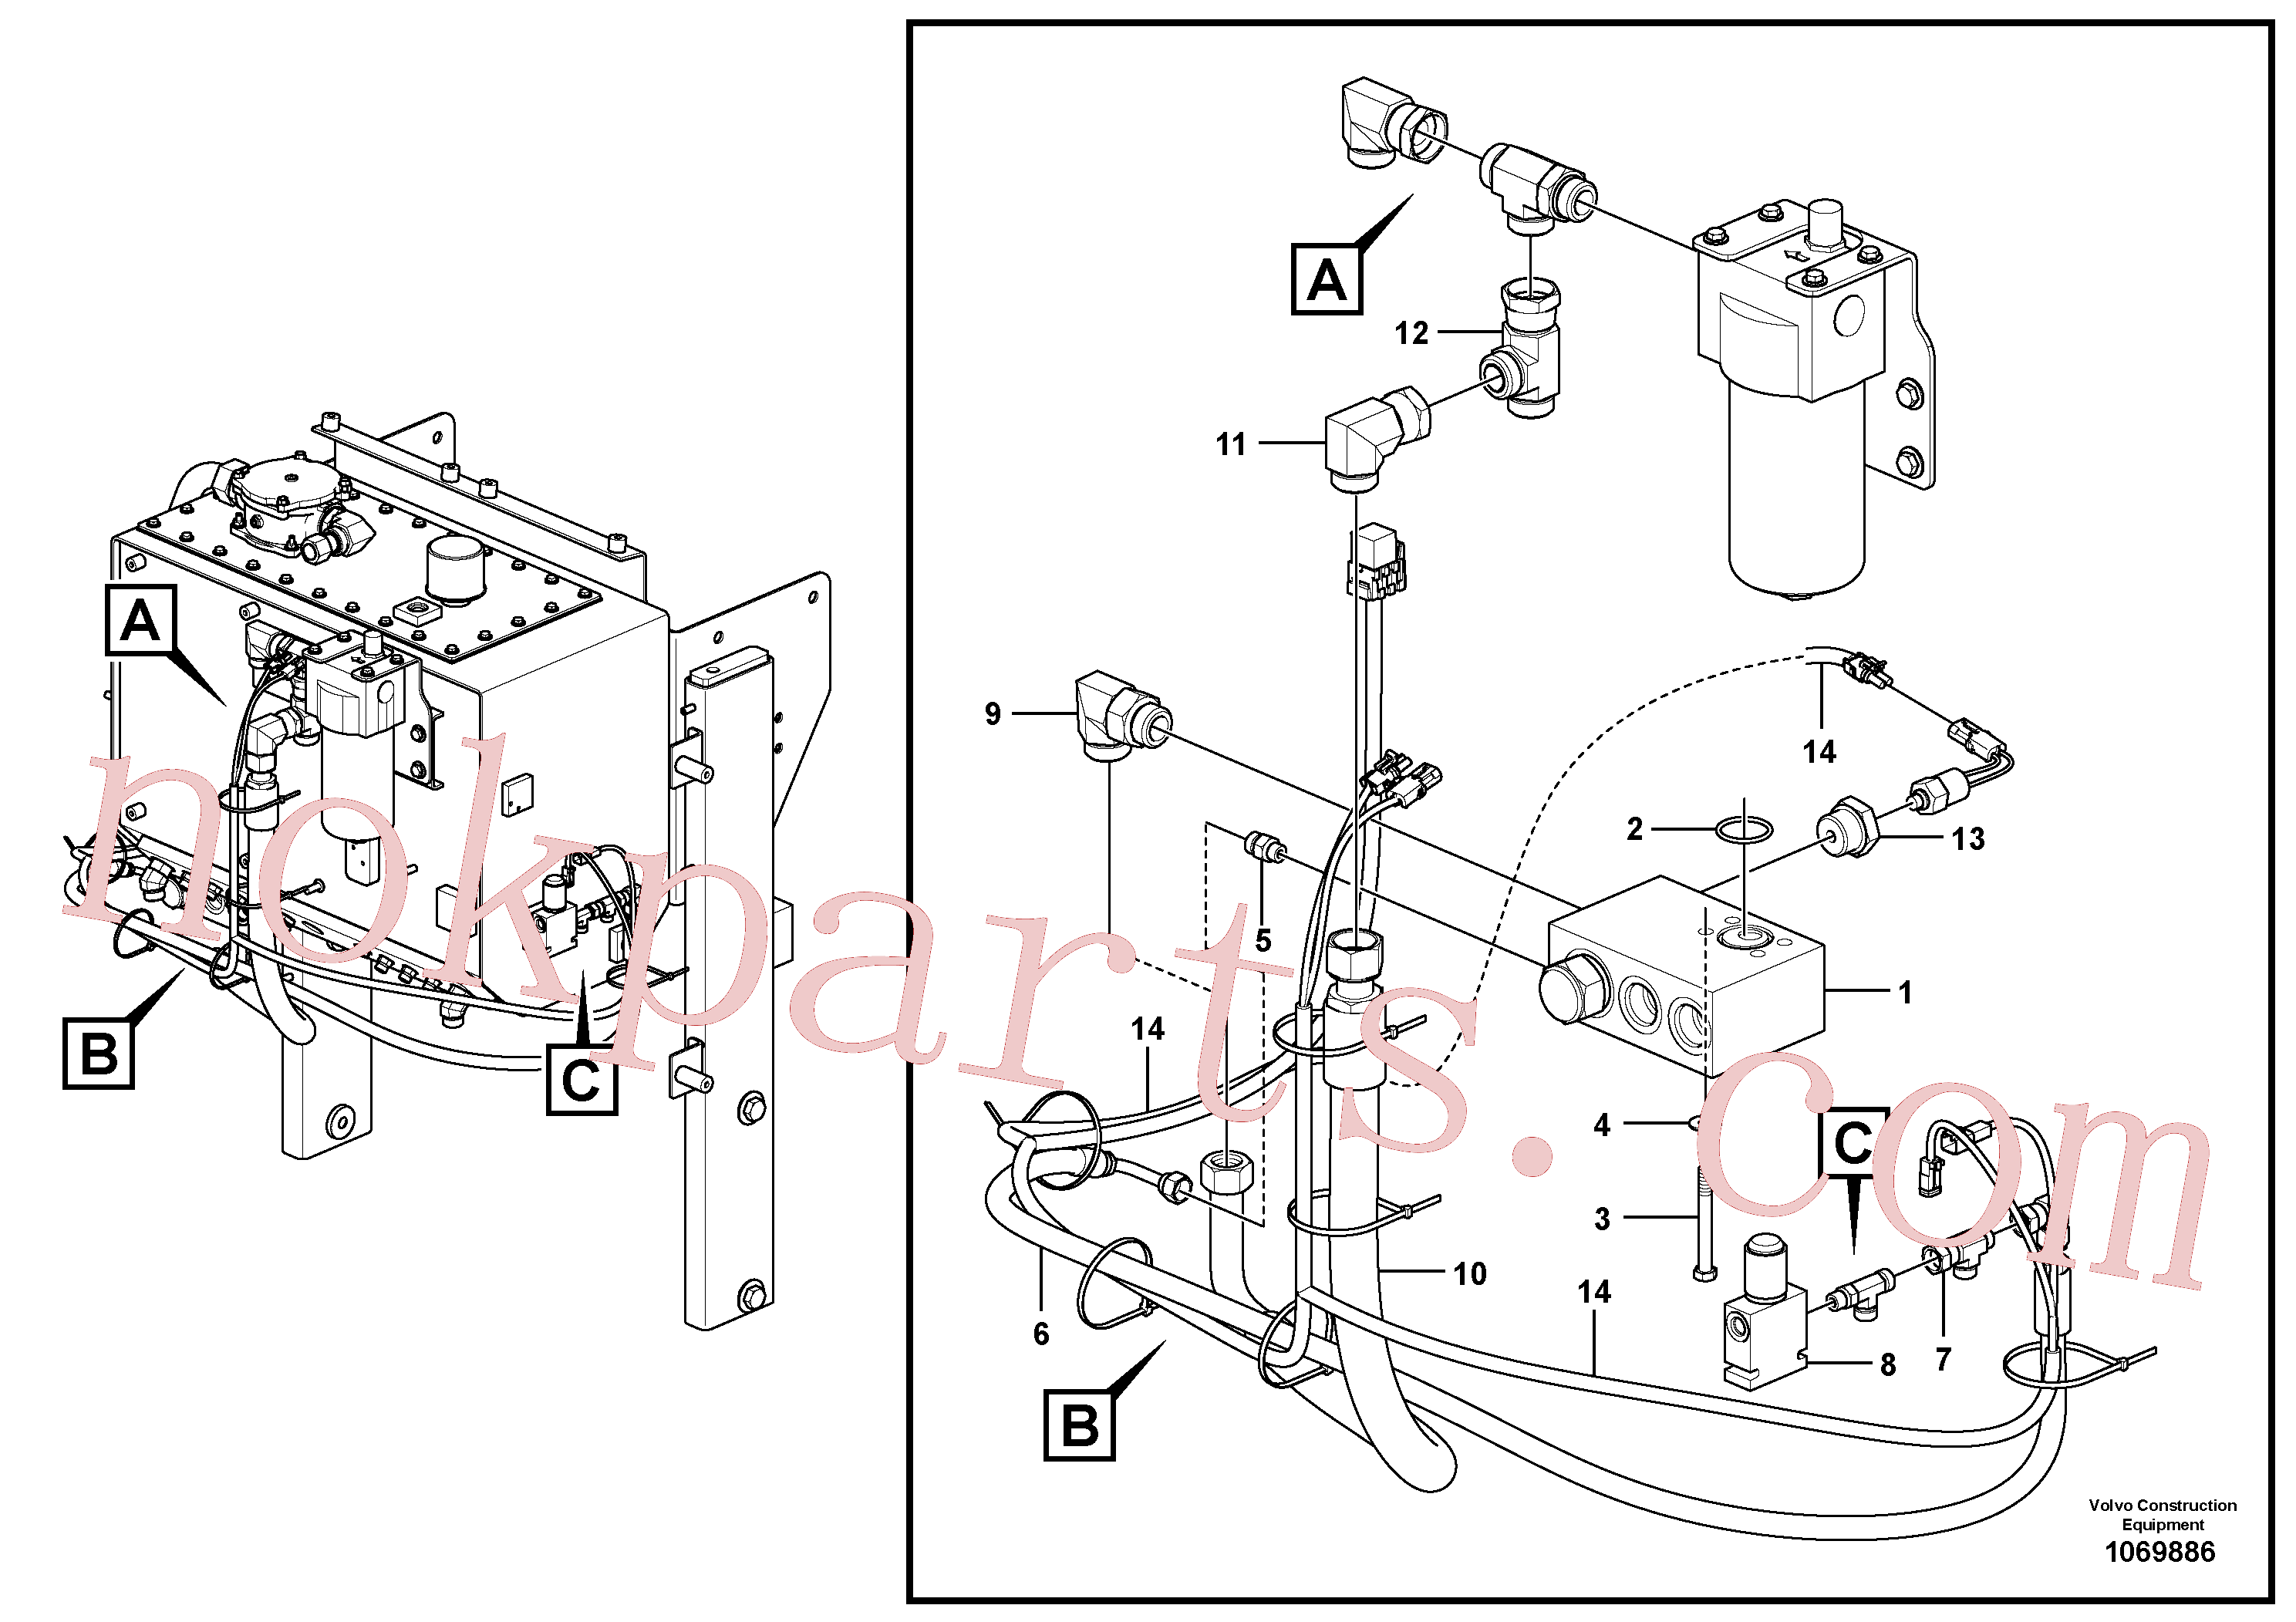 VOE936058 for Volvo Bypass Valve Hydraulic Circuit - AWD(1069886 assembly)